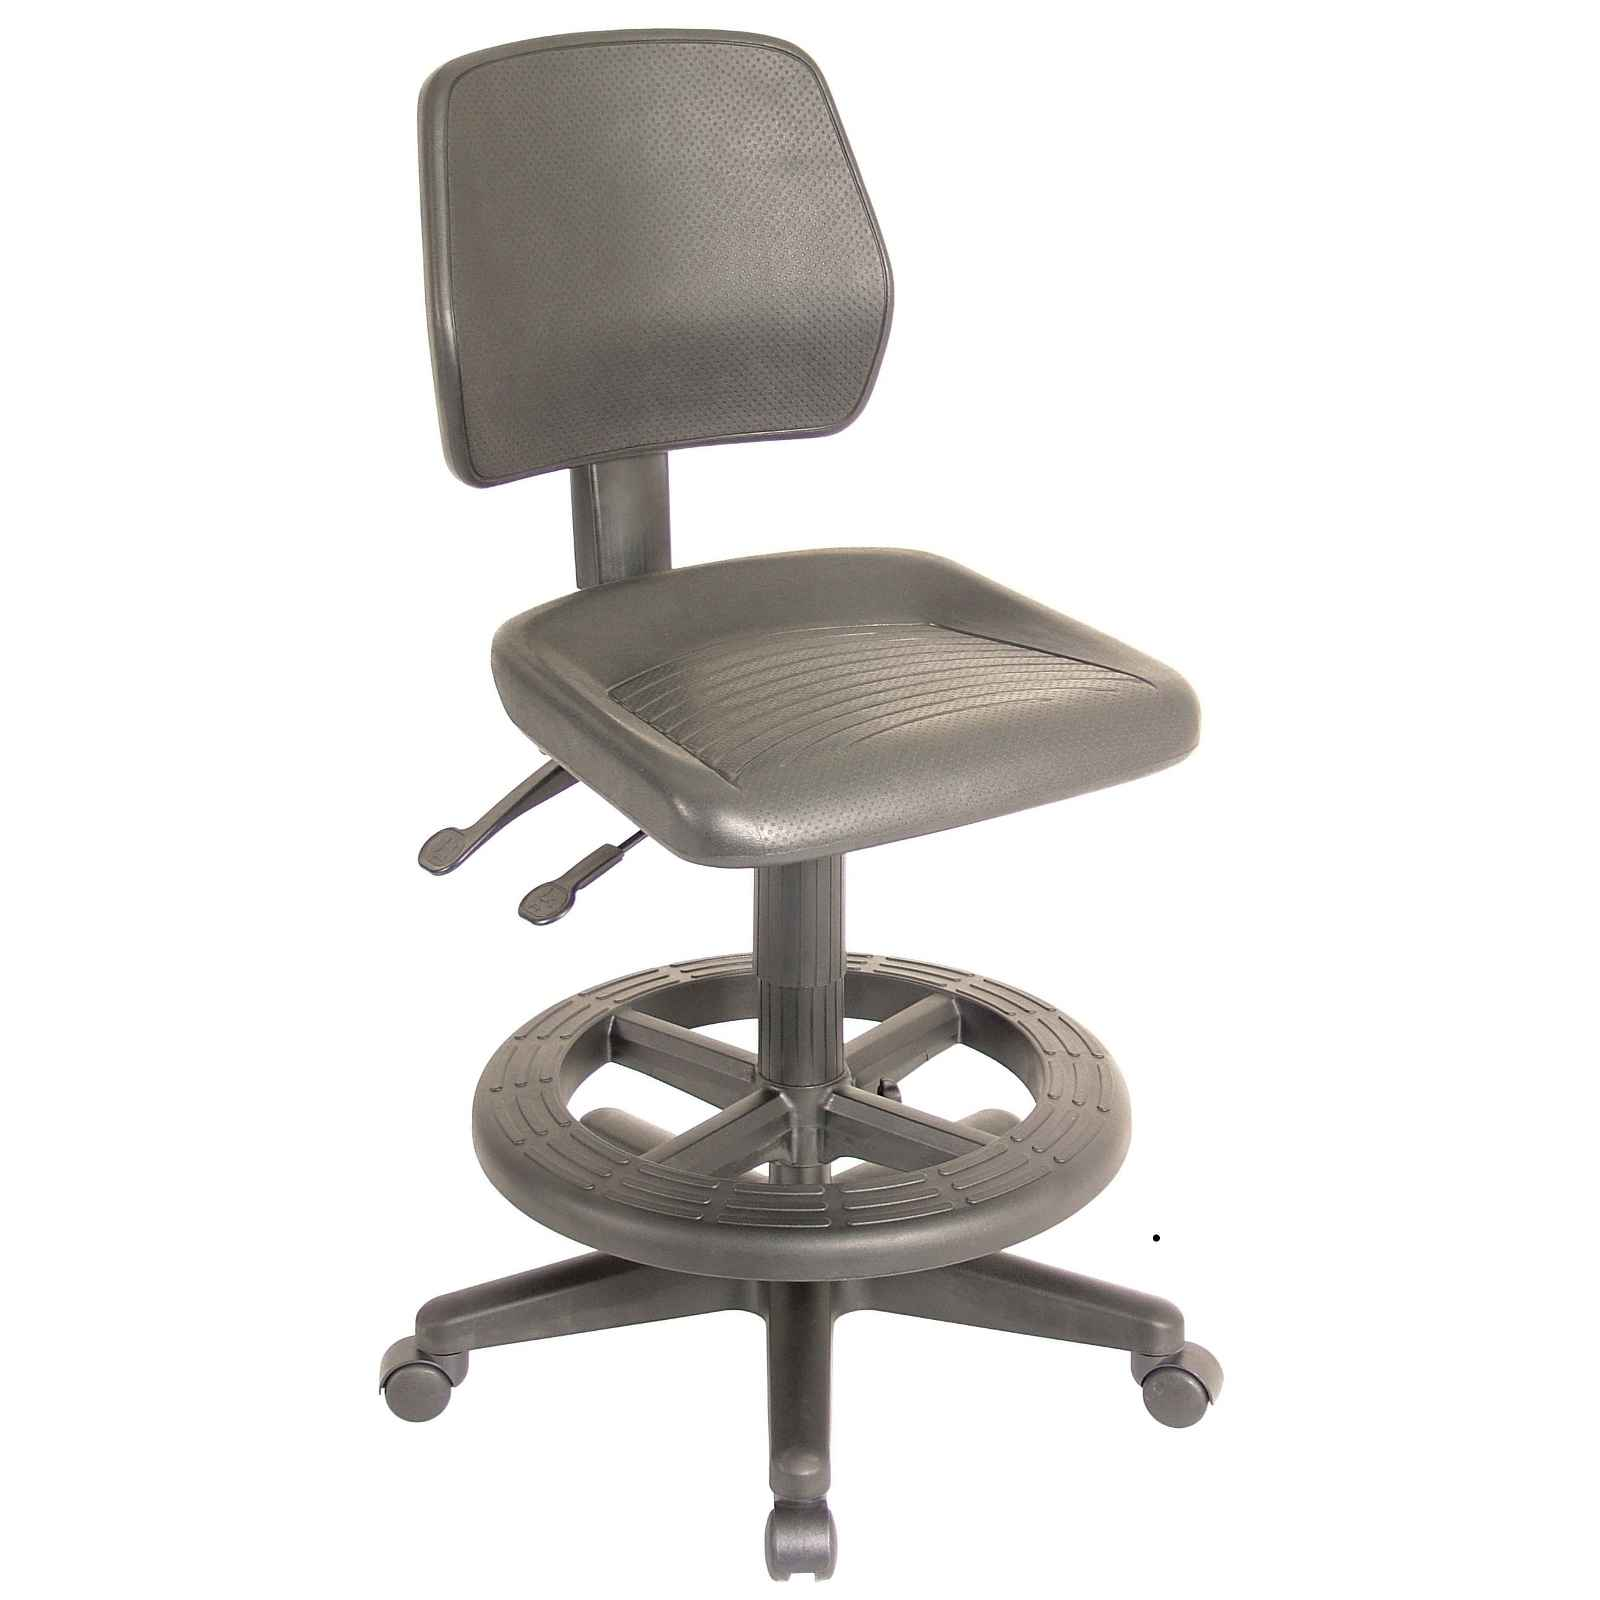 Leather Drafting Chair Stool For Extra Comfort